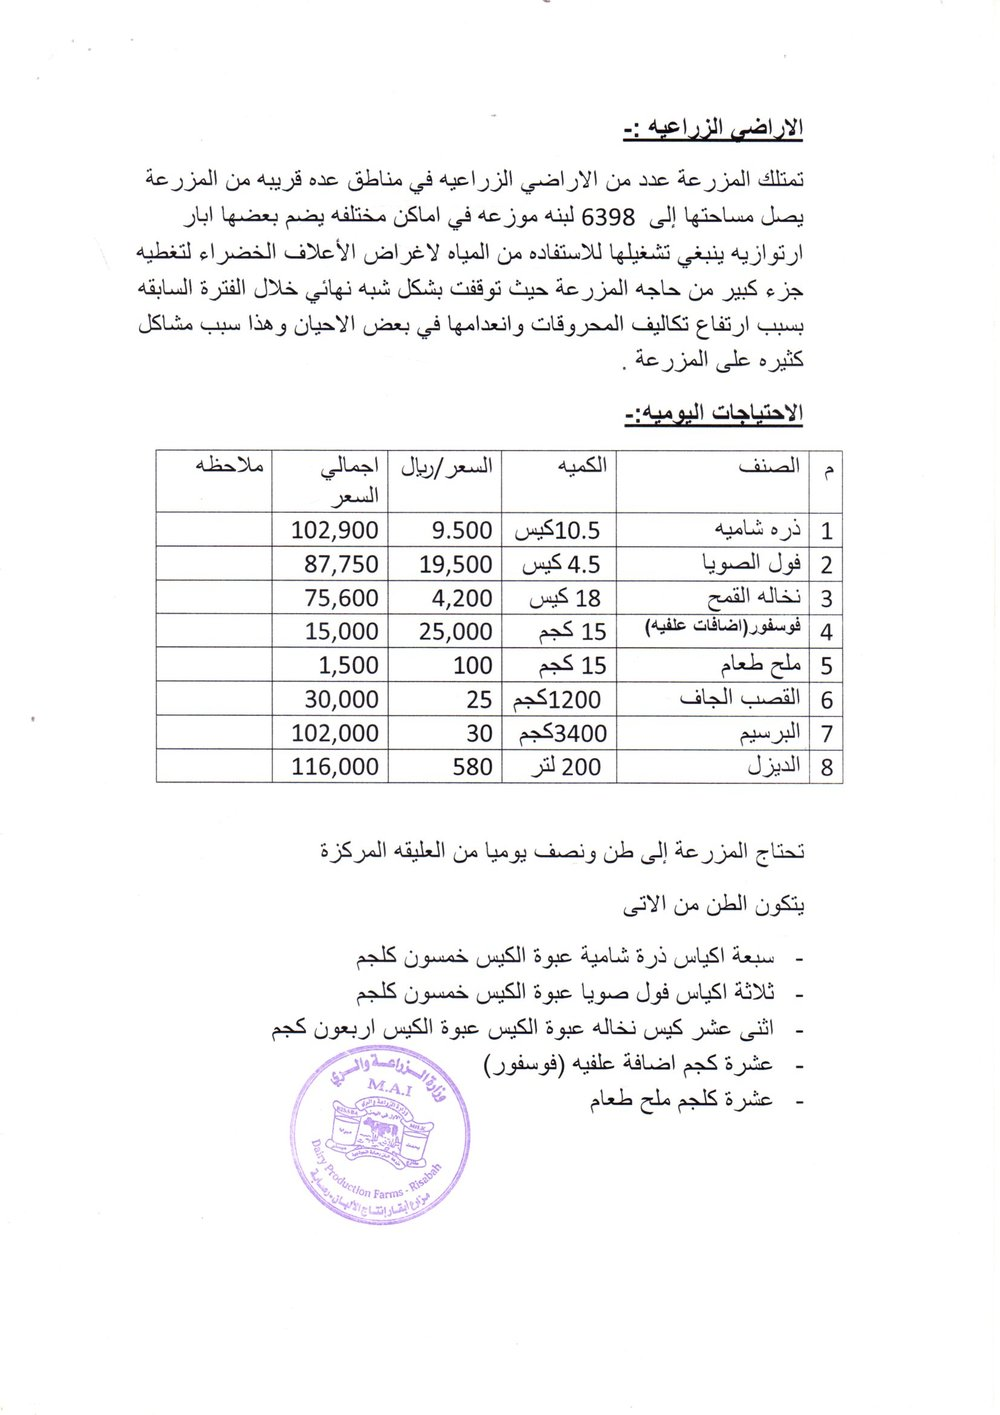 dhamar rosabah budget in arabic to OWAP AR 3 nov 2018 from Hisham.jpg